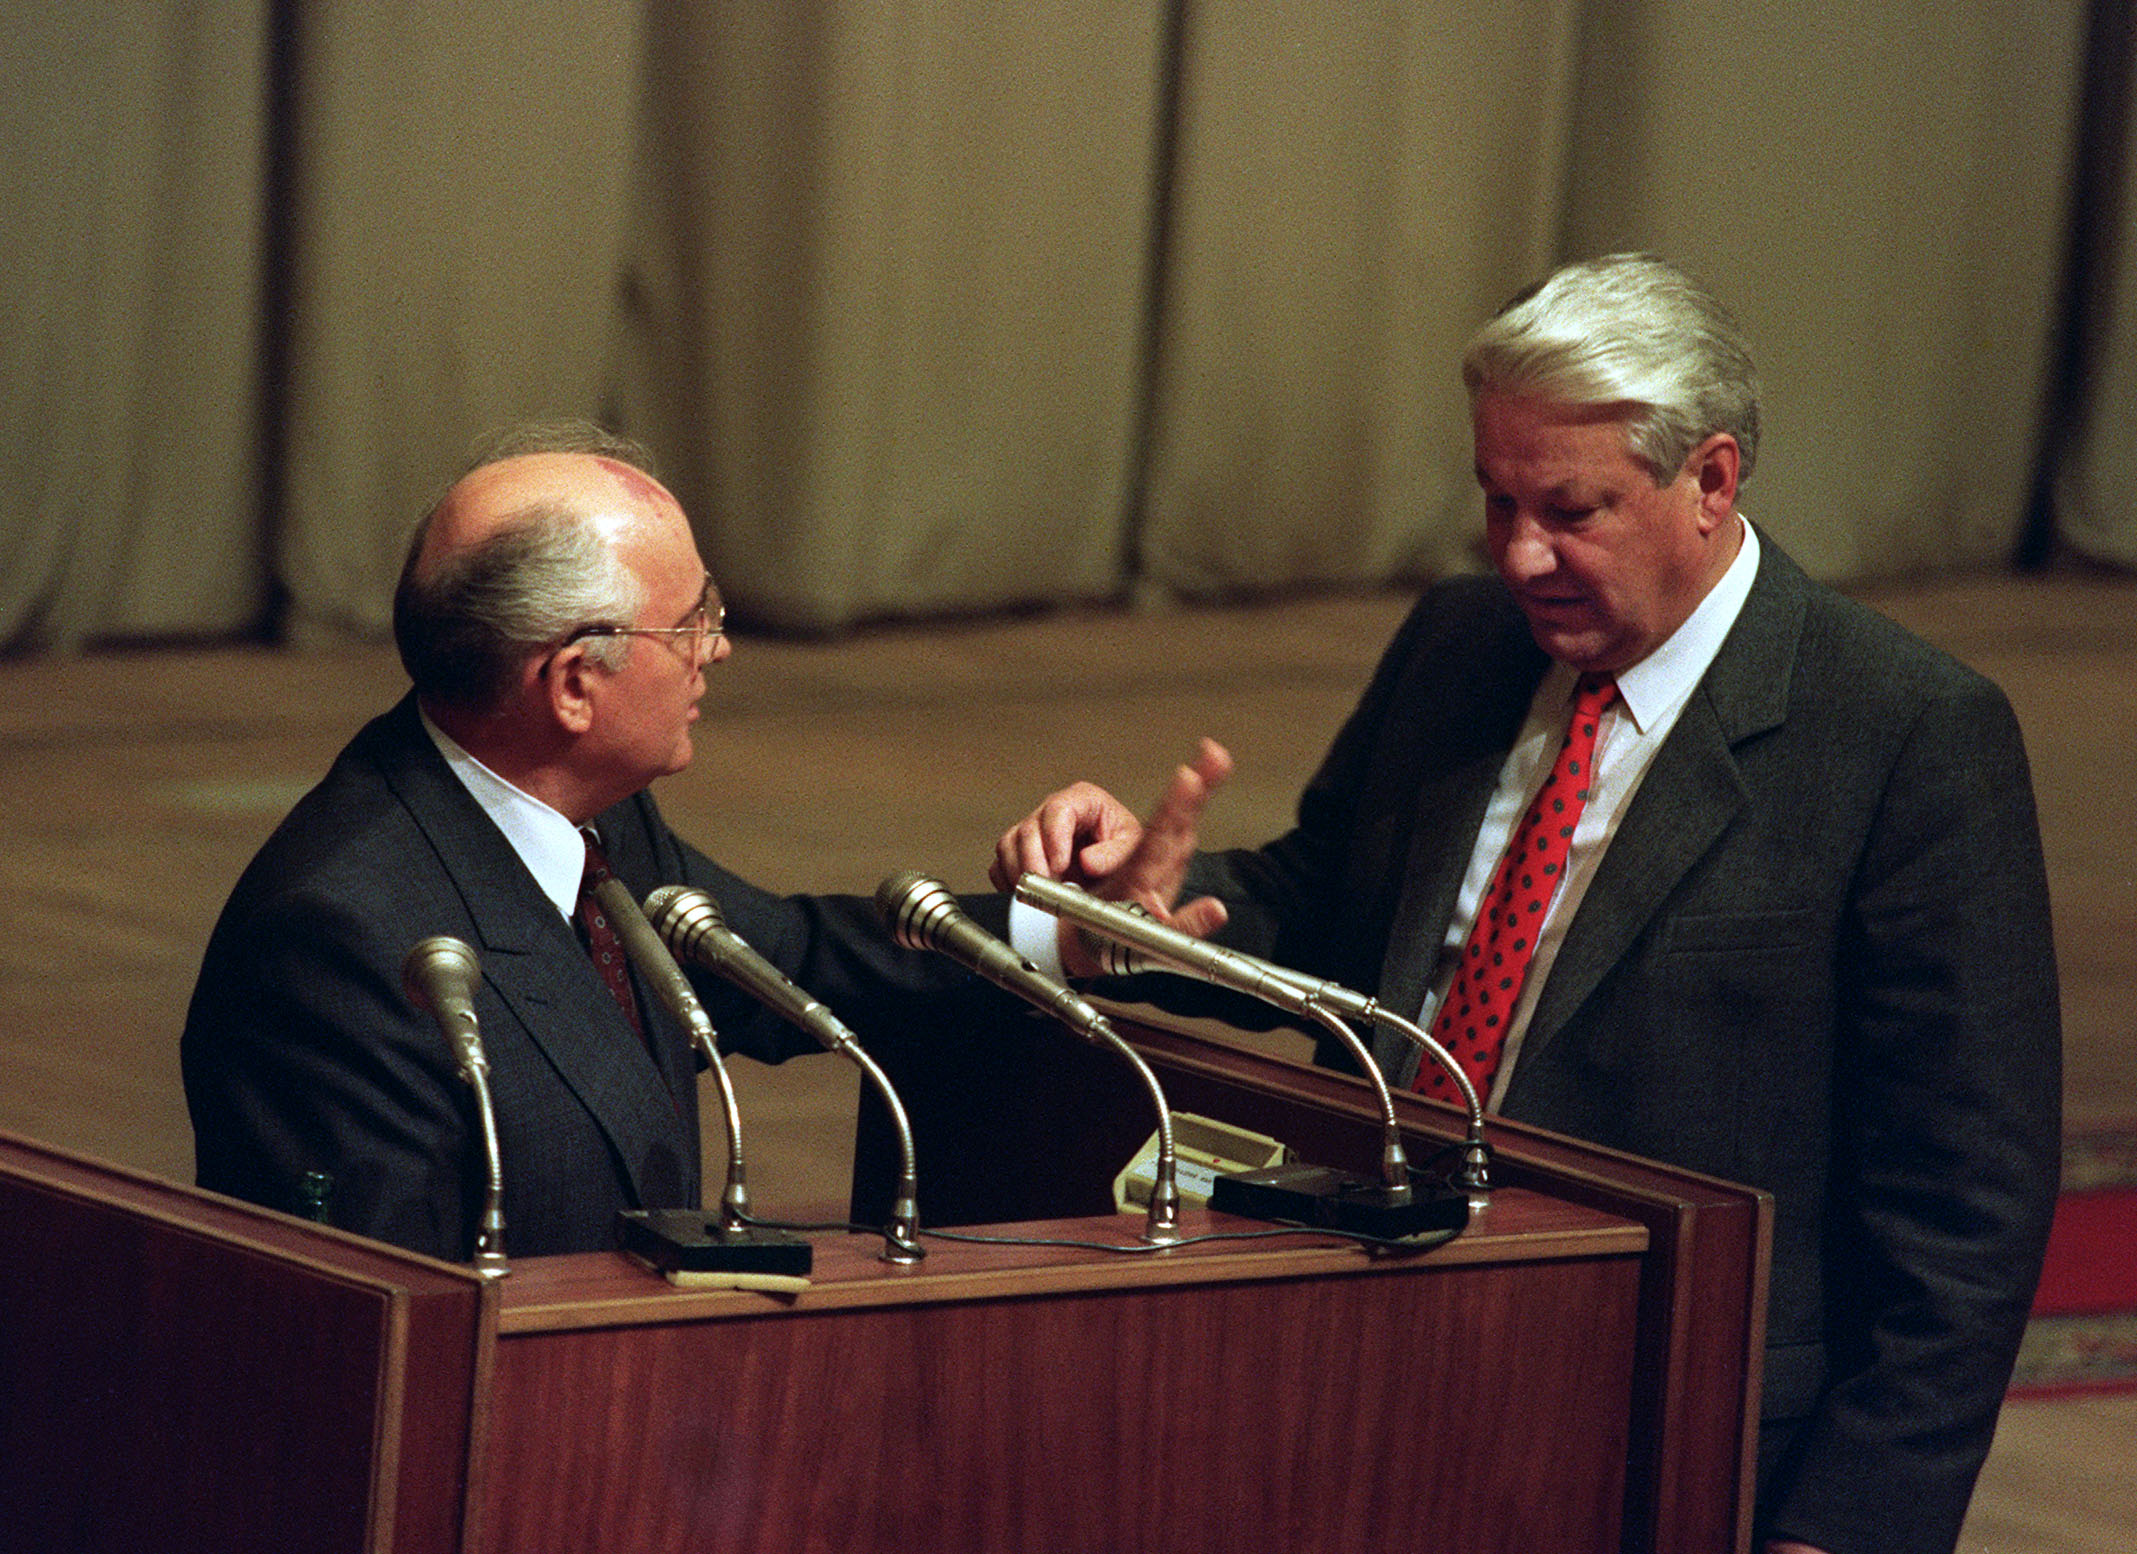 Russian President Boris Yeltsin (R) gestures towards Soviet President Mikhail Gorbachev in Moscow on August 23, 1991 while he enjoins him to read a paper during session of Russian Parlement. Gorbachev returned to Moscow 22 August 1991 after coup d'etat was failed. AFP PHOTO PIKO